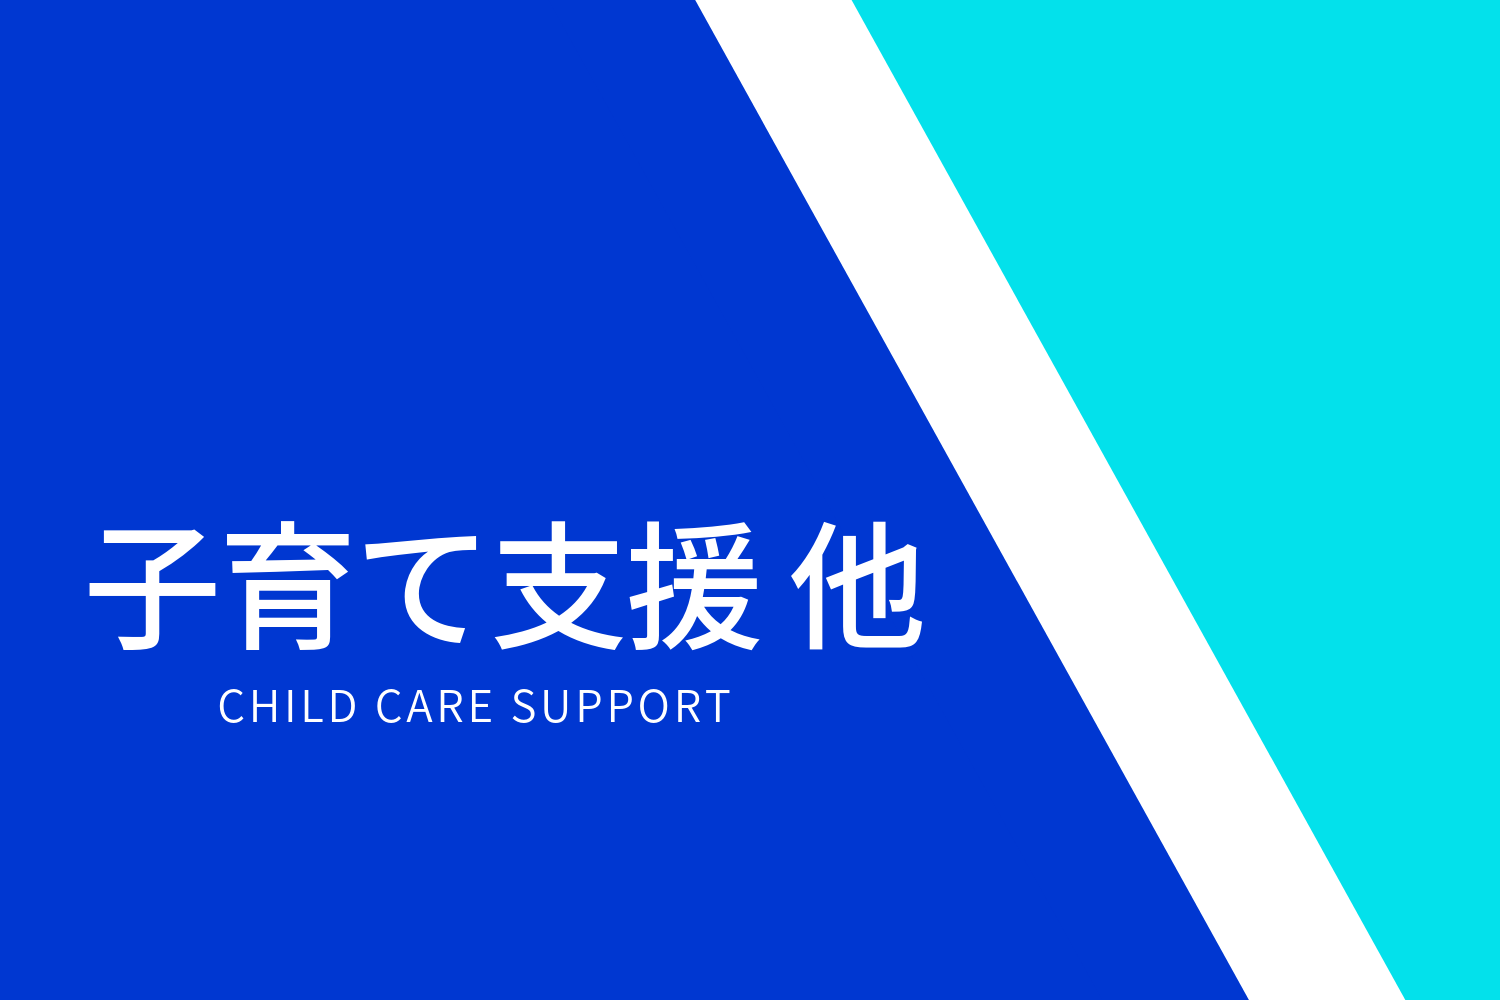 Child care support